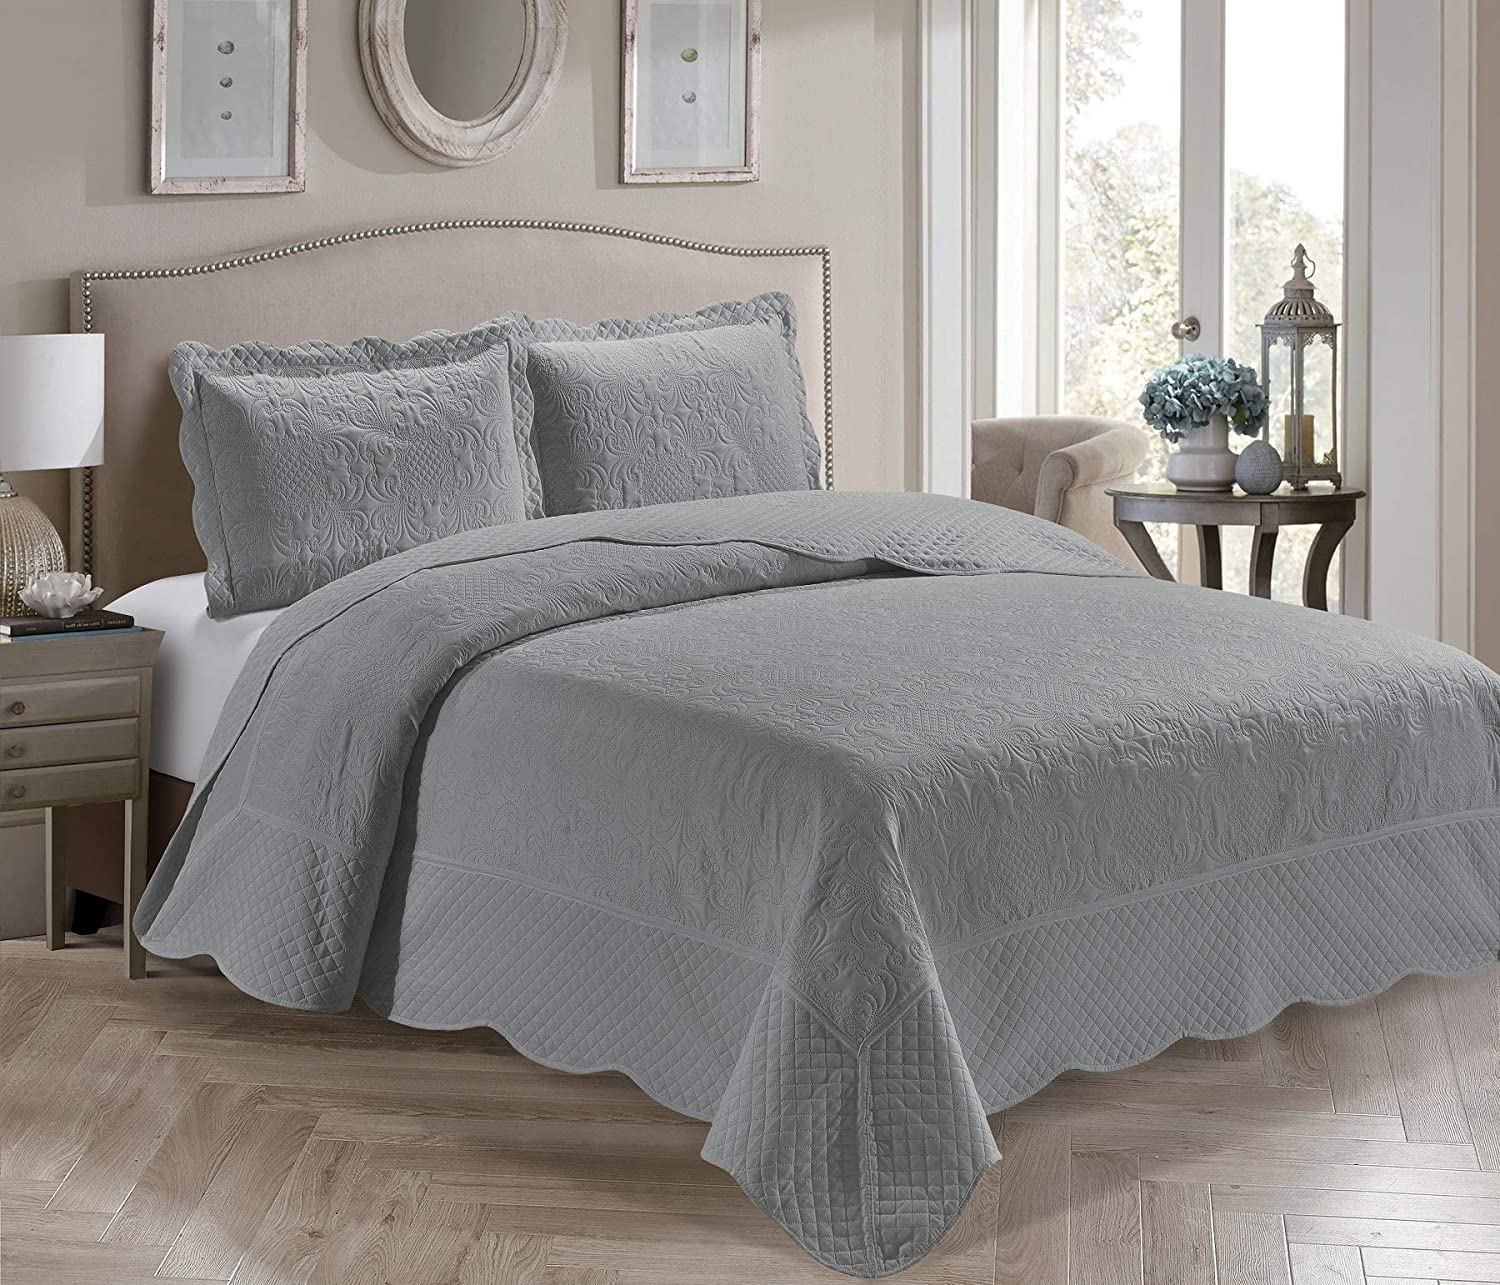 Home Collection 3 Piece King/California King Over Size Embossed Solid Grey Color Coverlet Bedspread New # Veronica